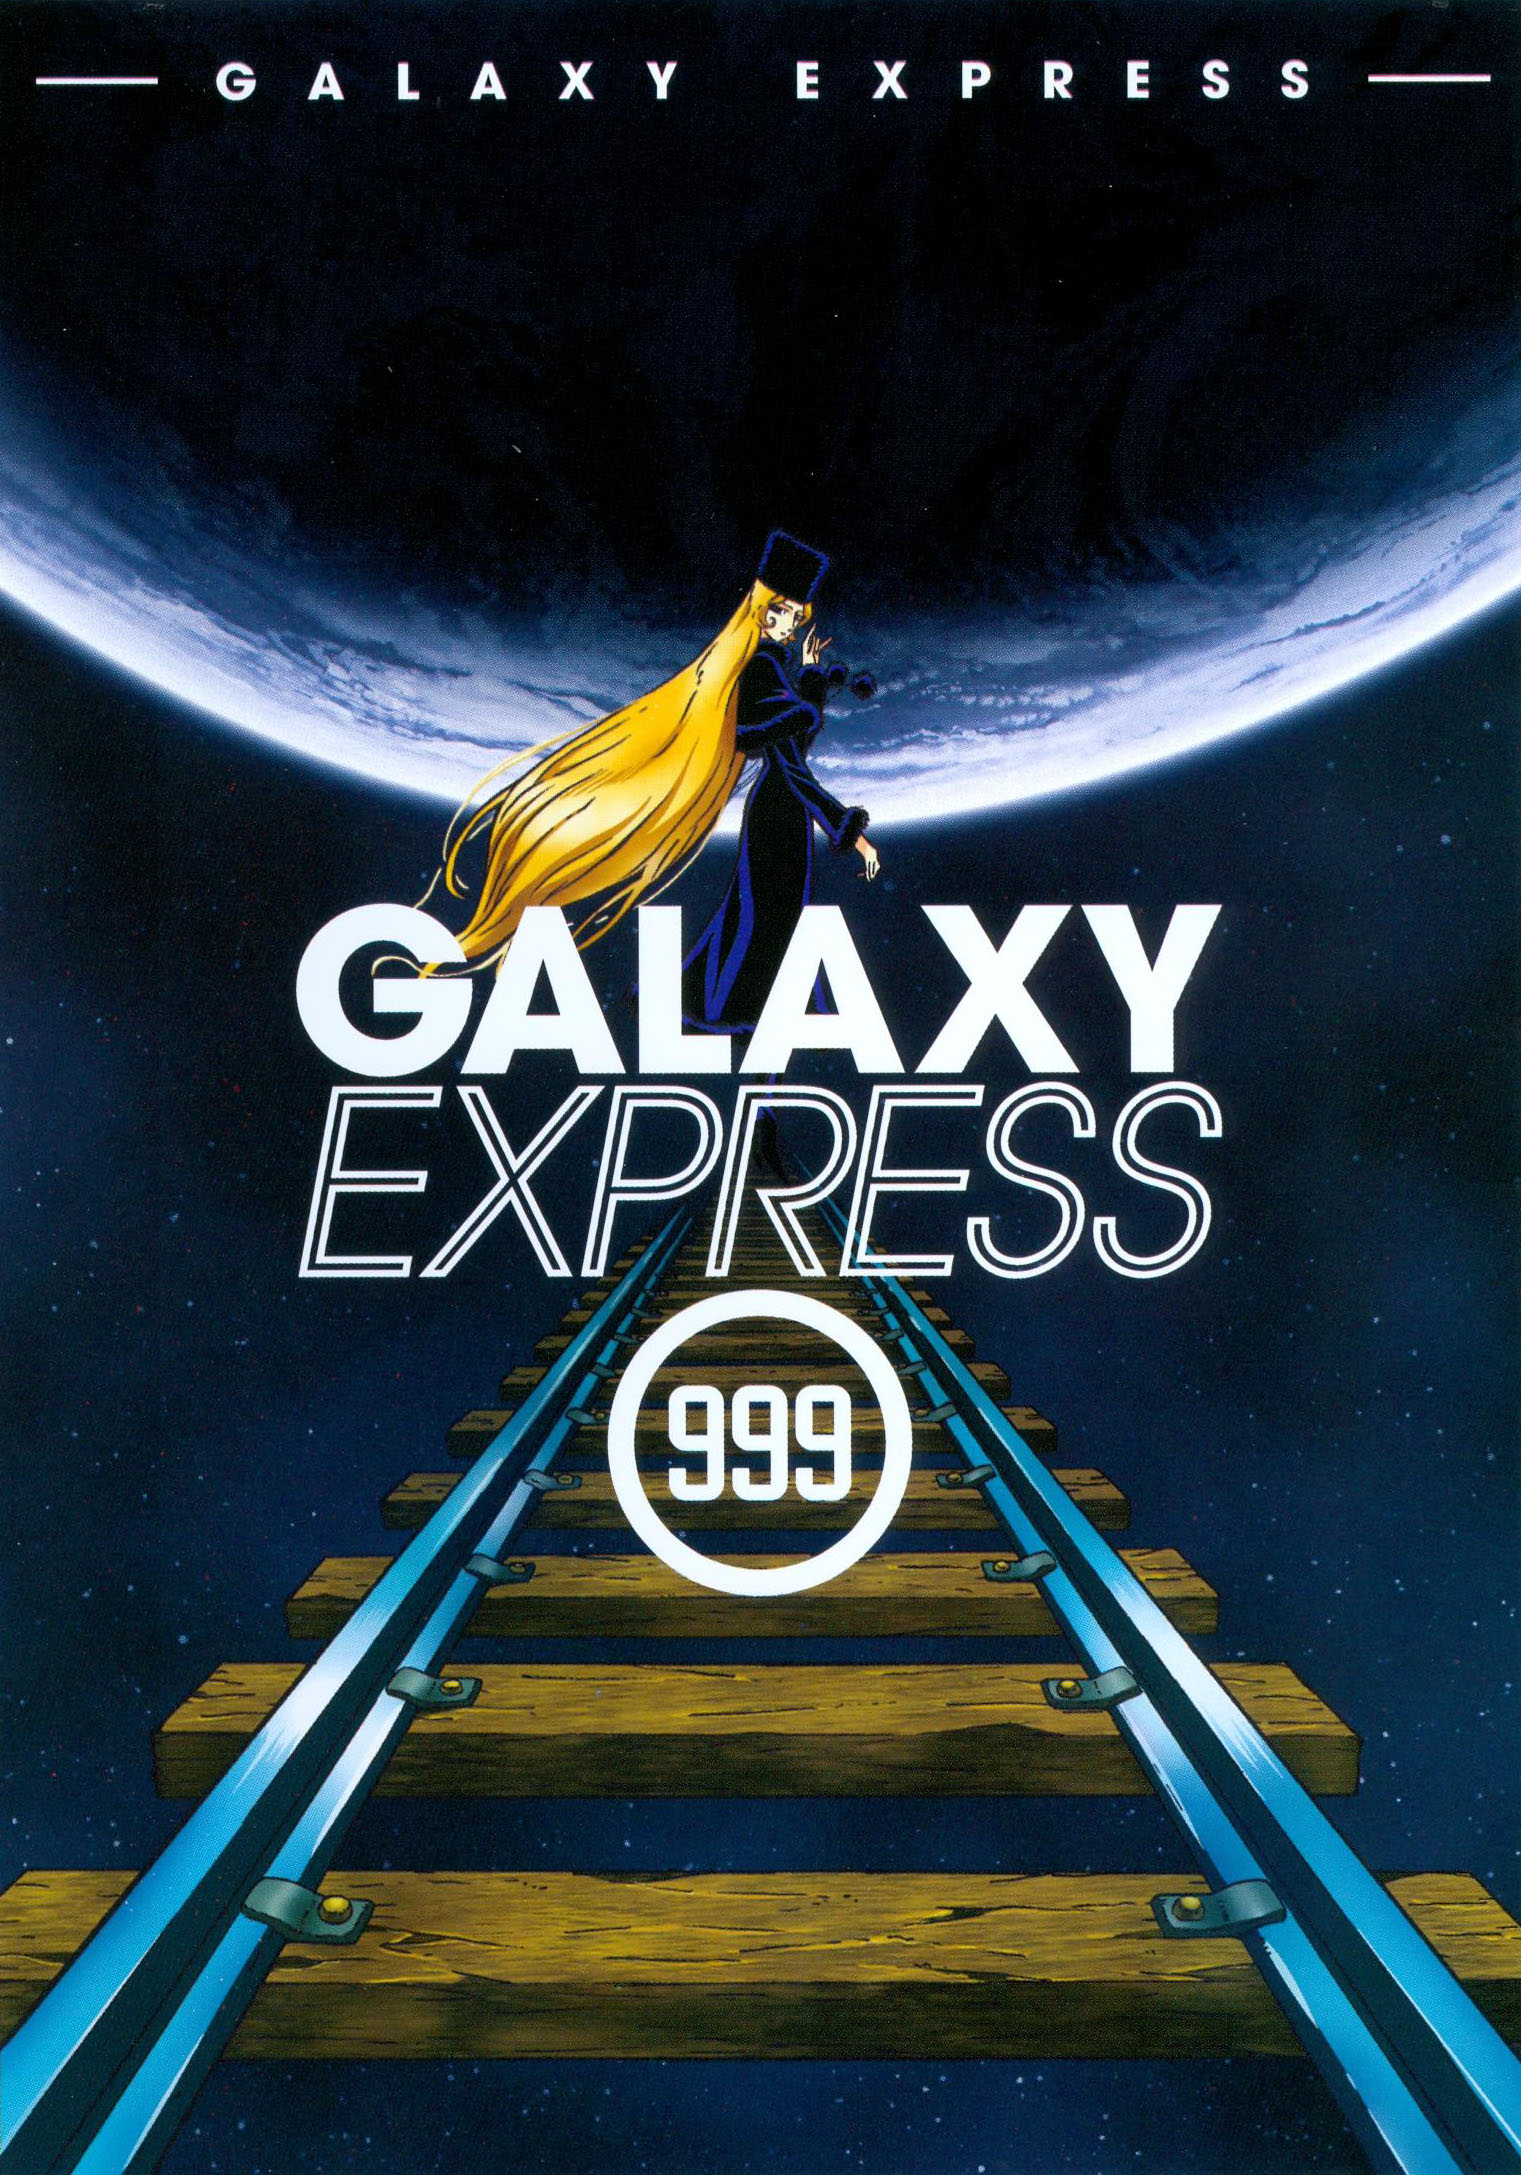 The Galaxy Express 999